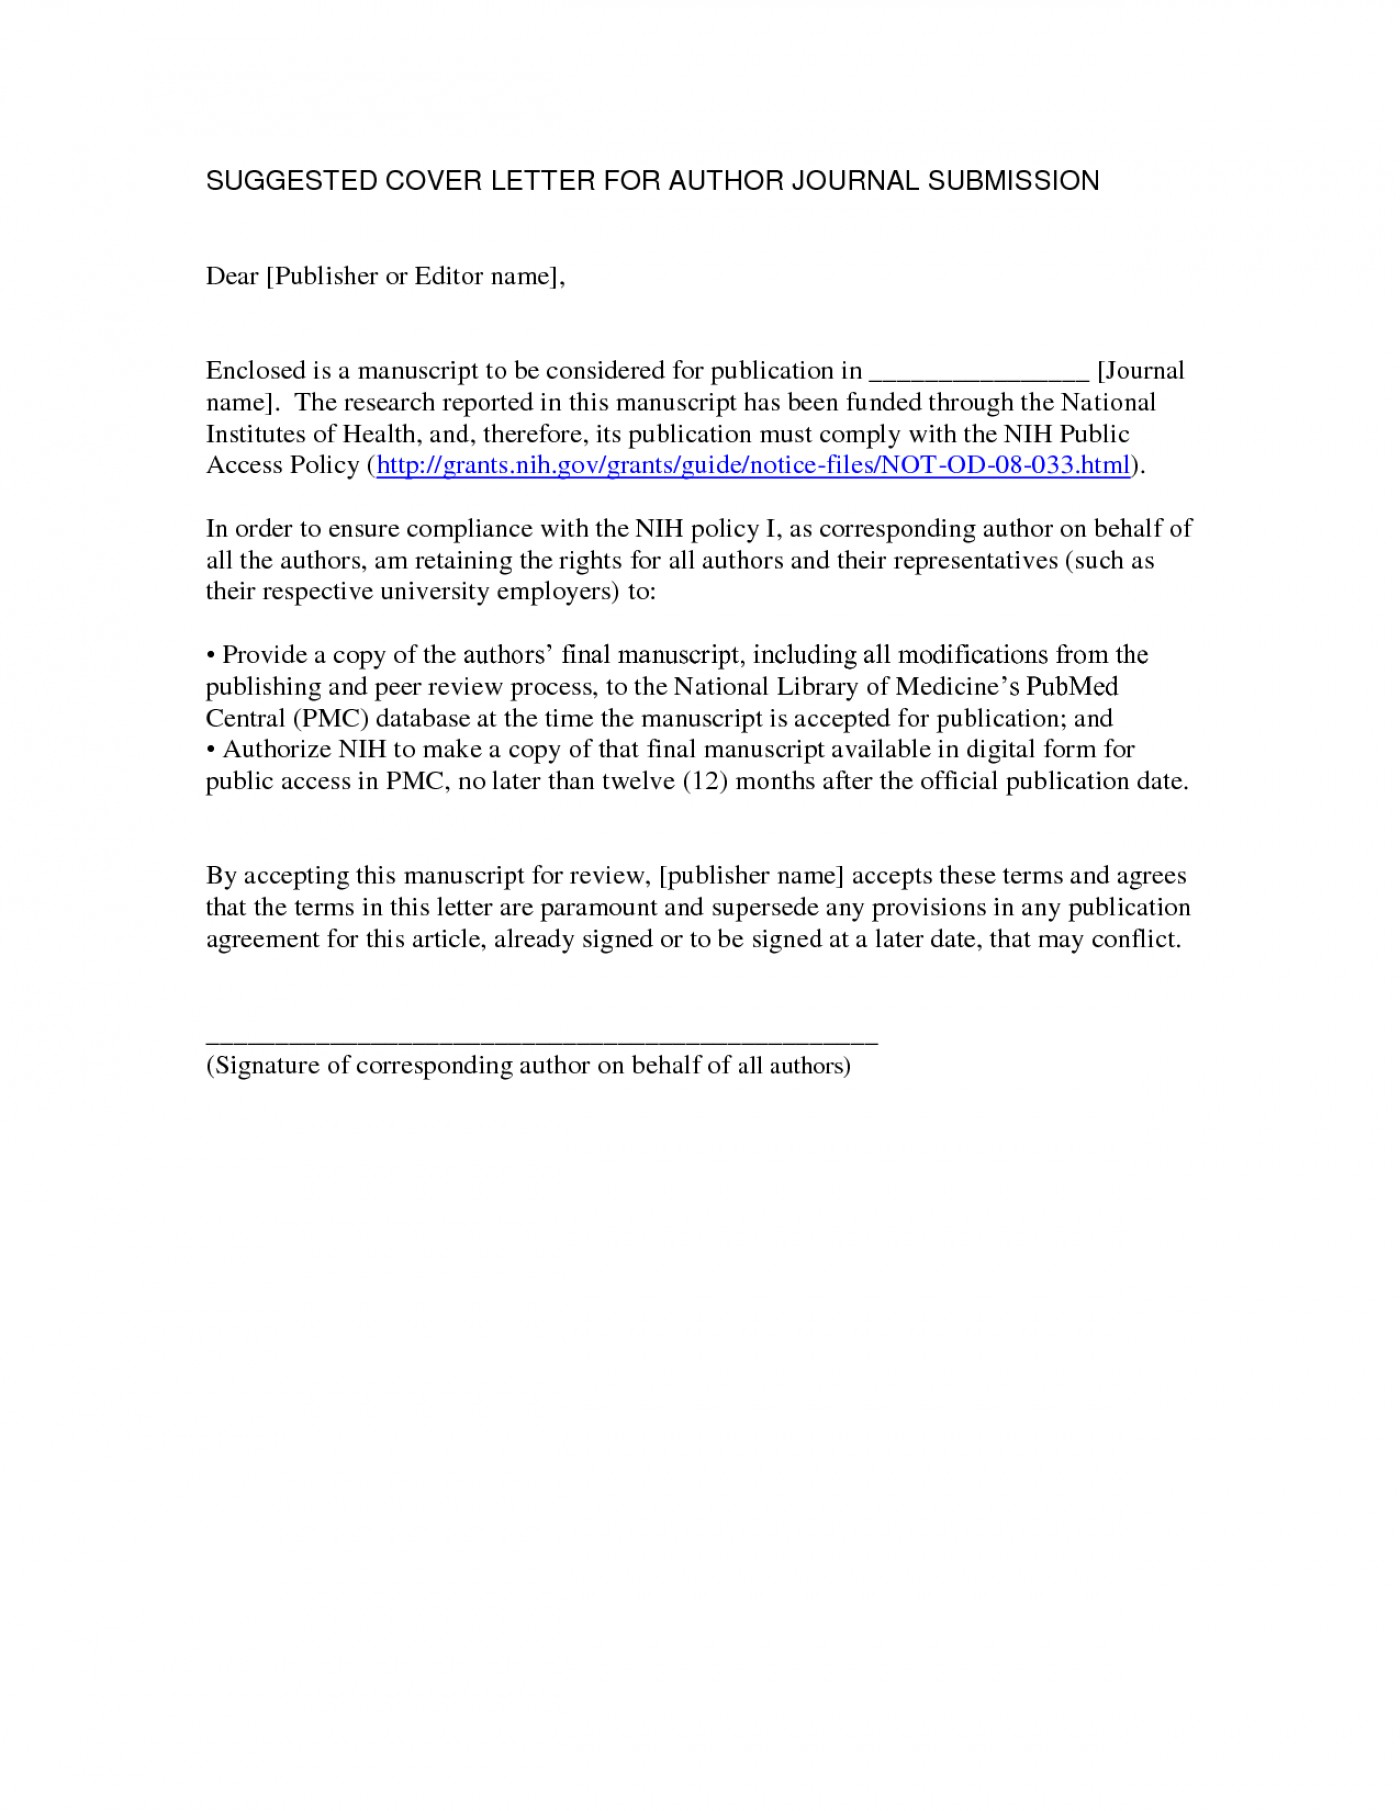 006 Research Paper Cover Letter For Publication Sample ...